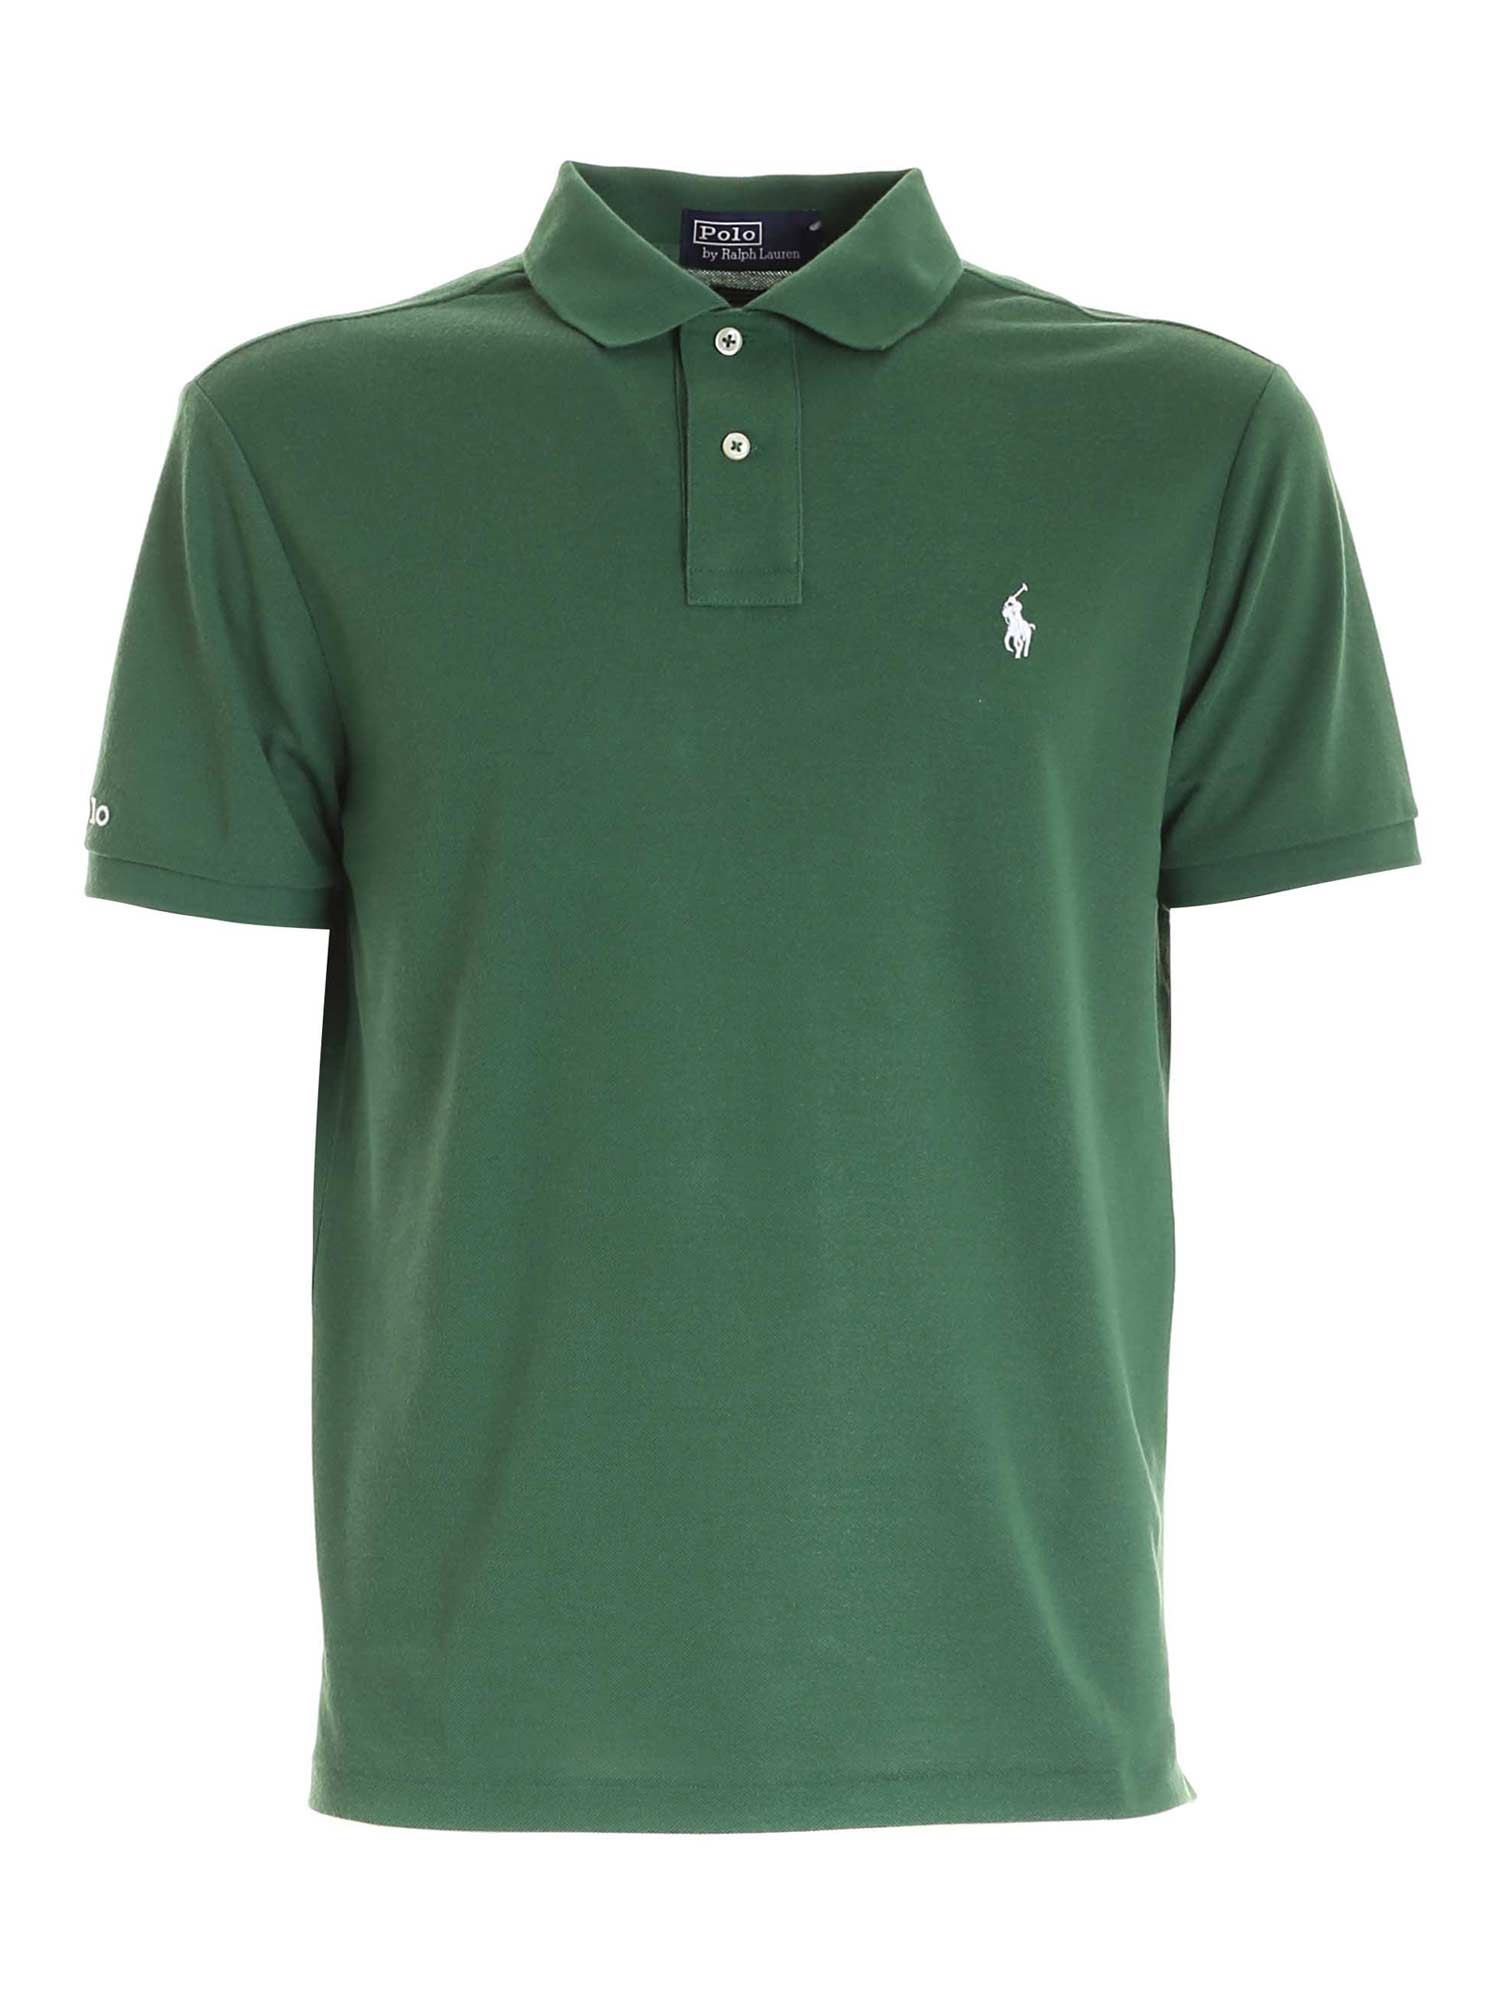 Polo Ralph Lauren White Embroidery Polo Shirt In Green